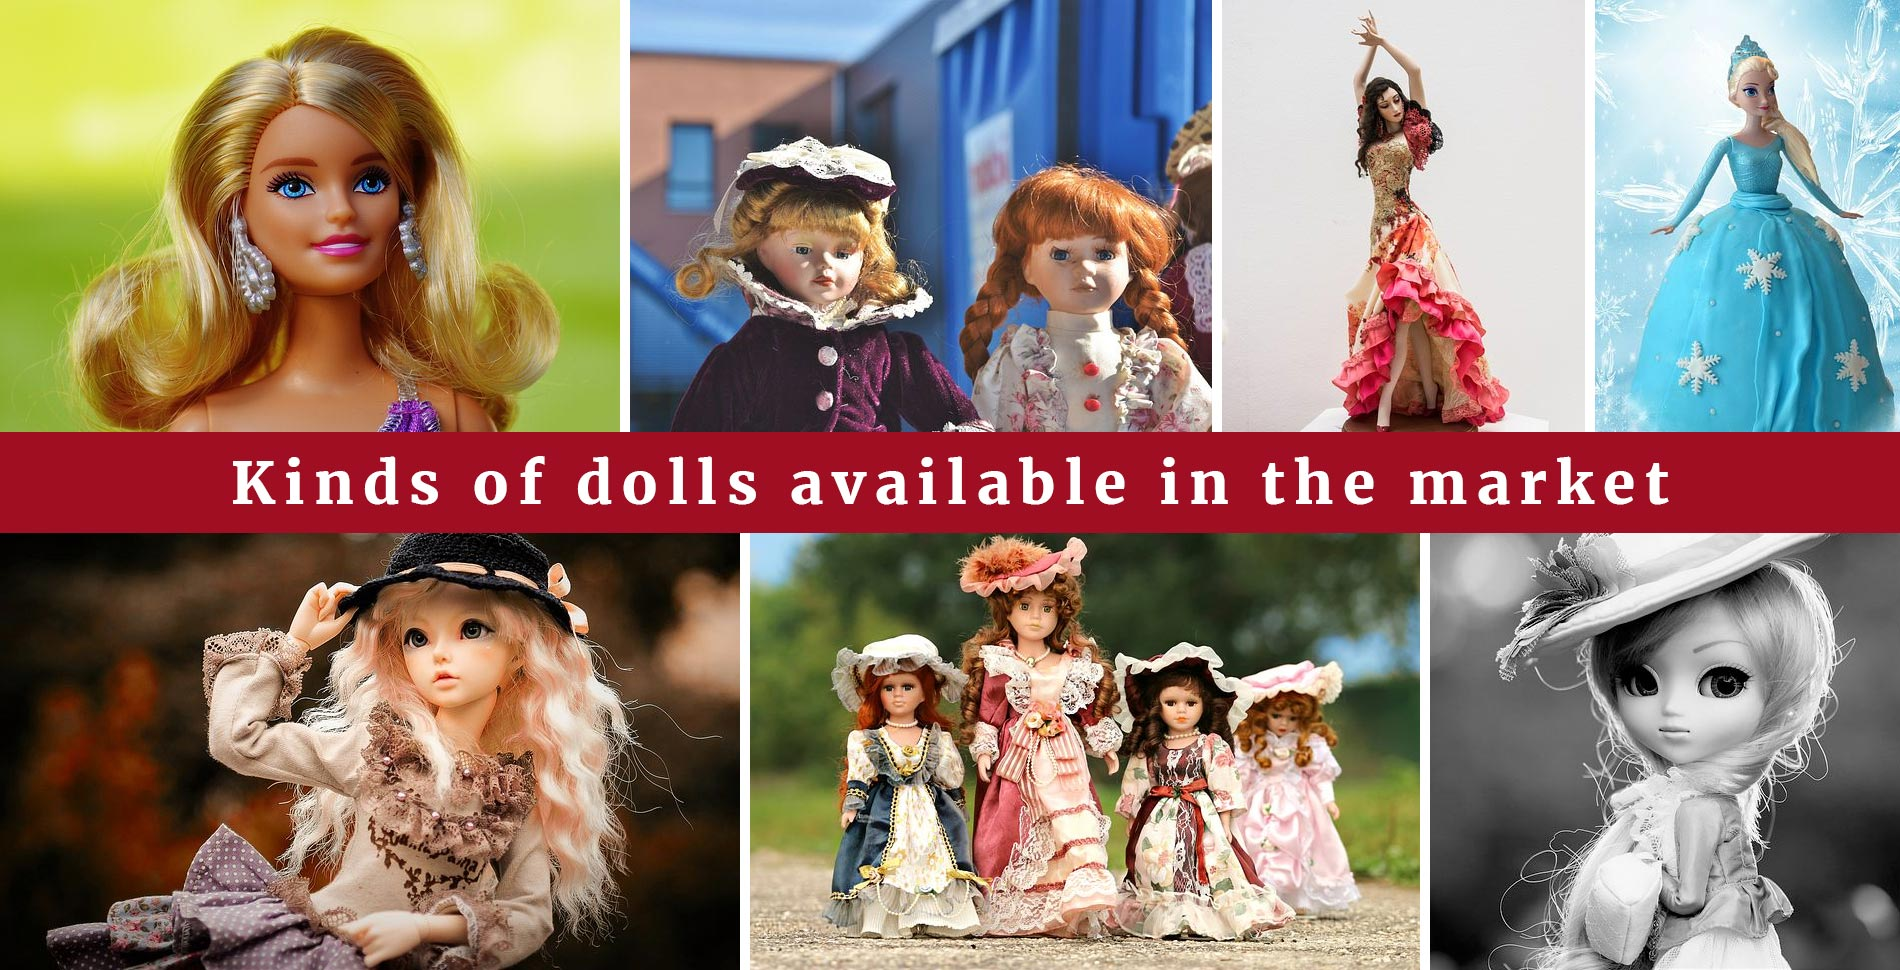 Baby dolls in the market